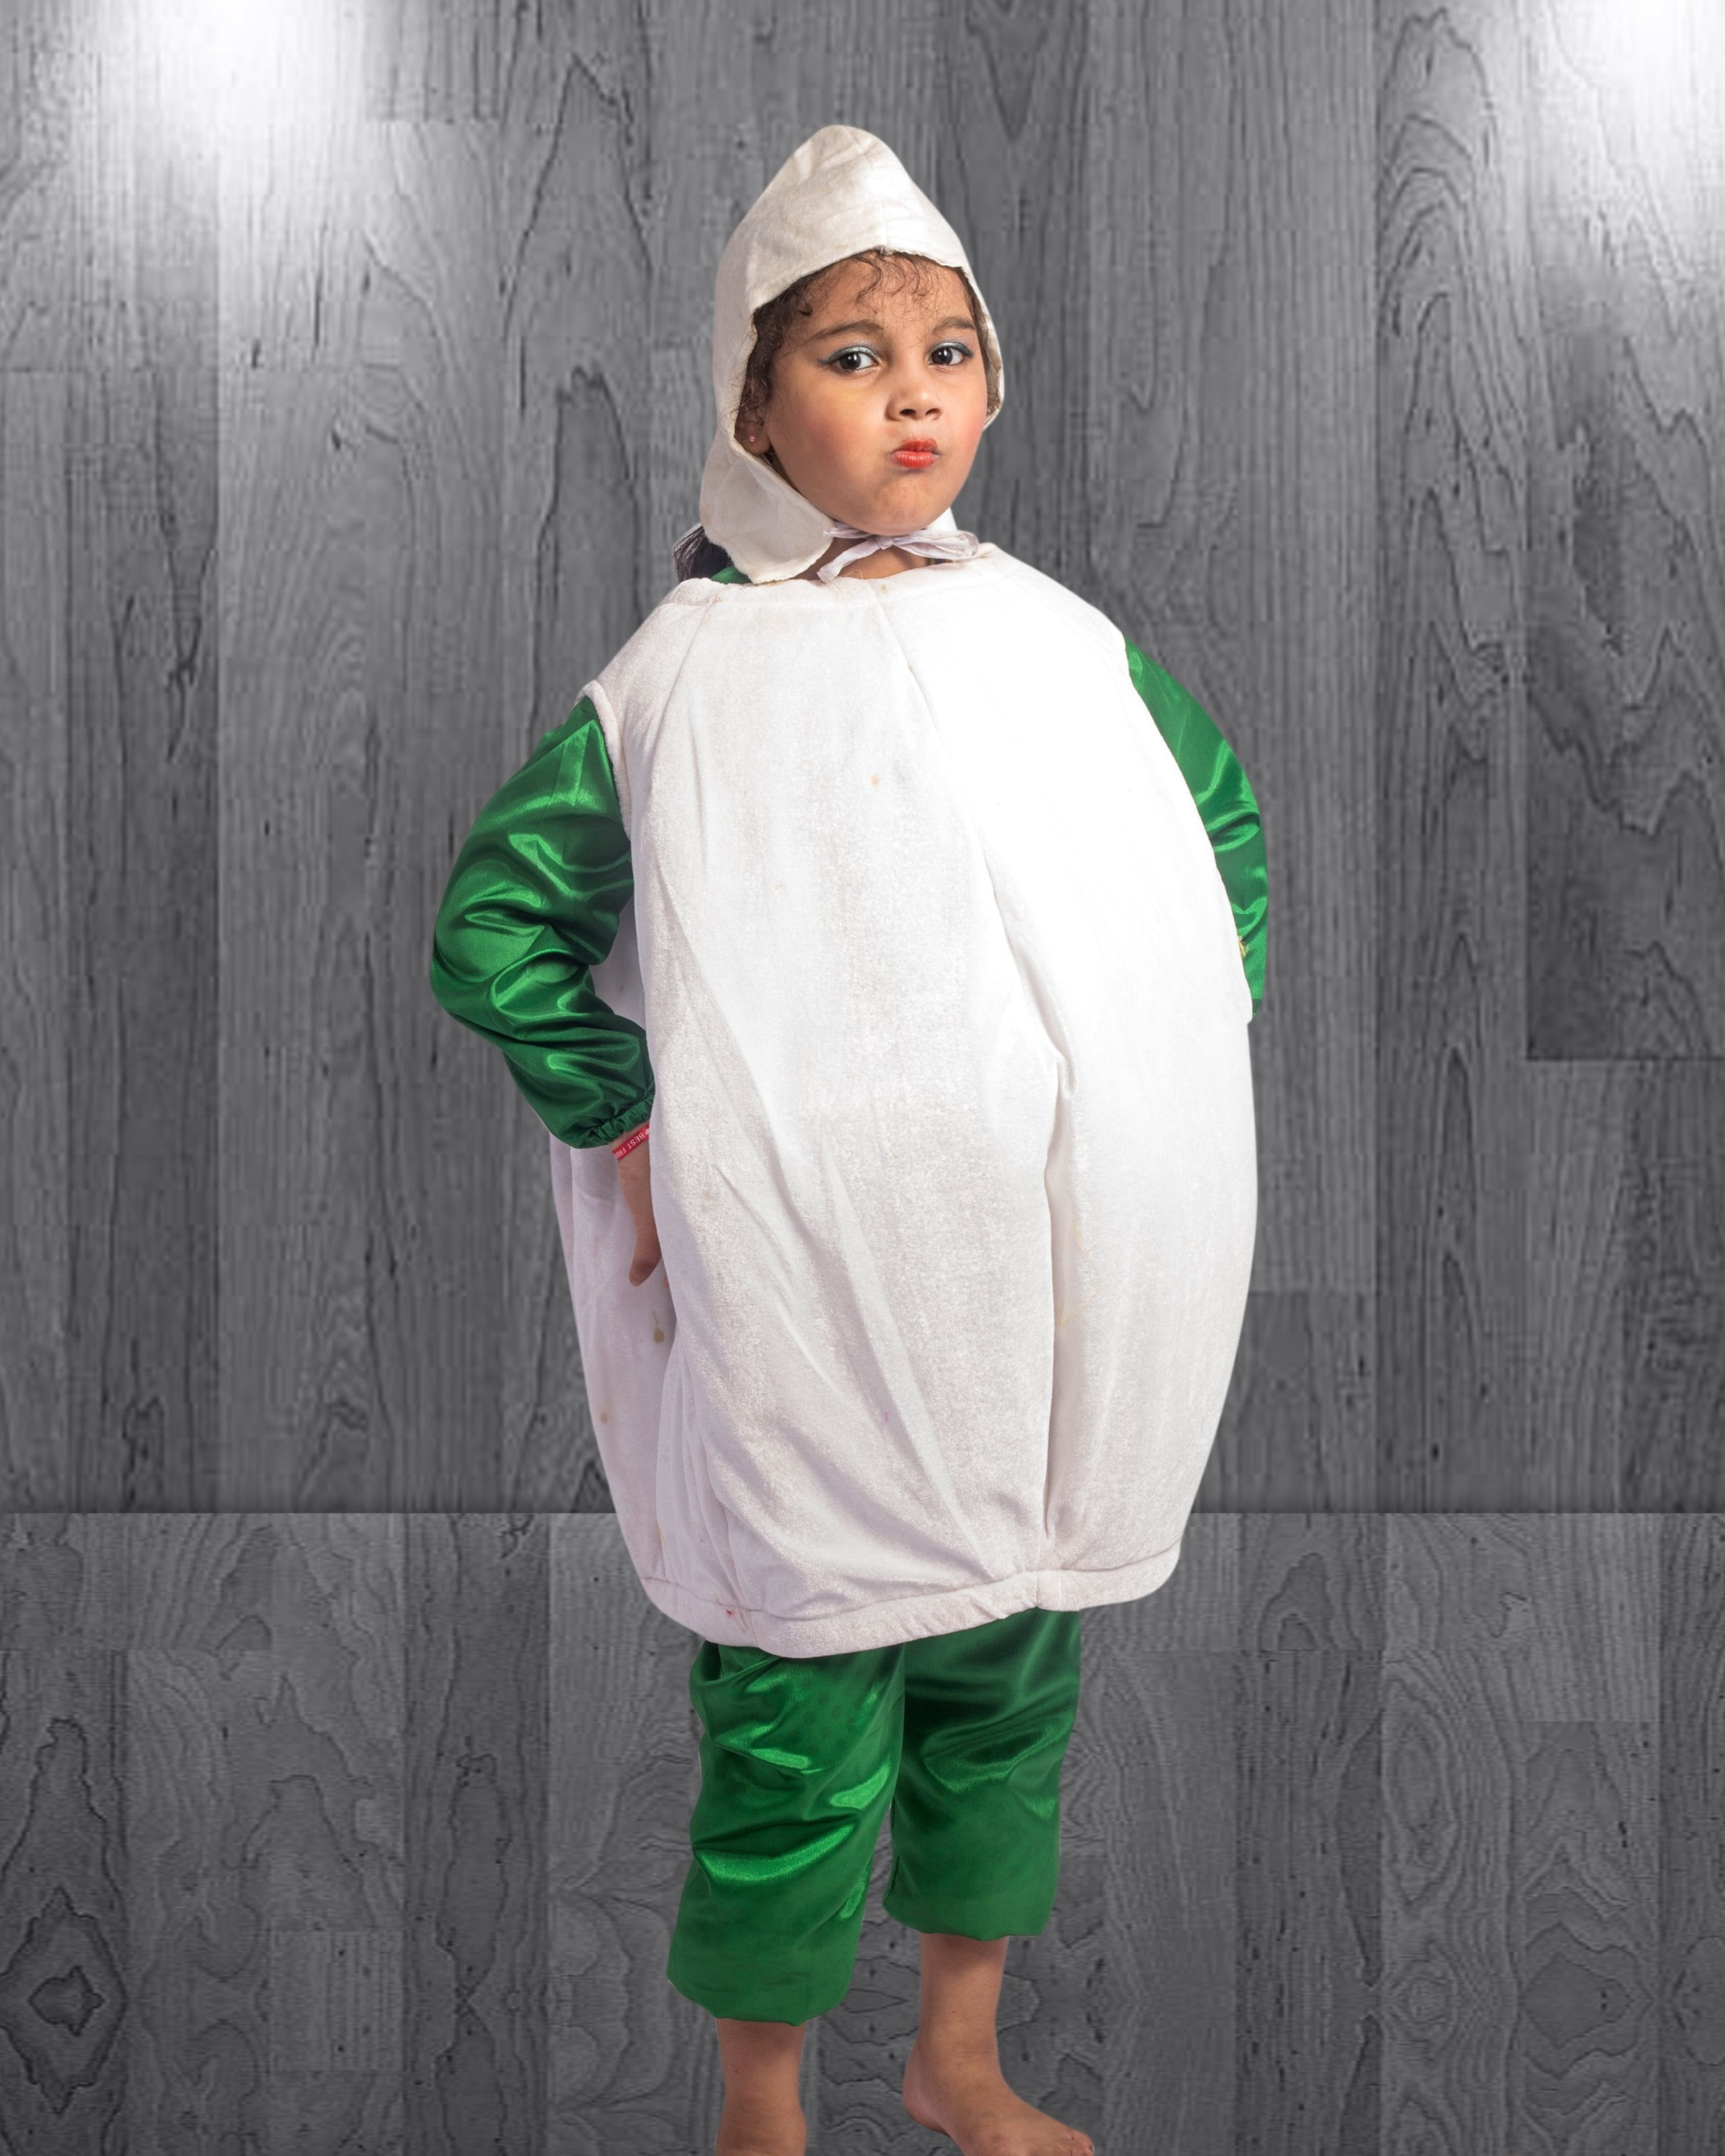 Garlic Vegetable Costume